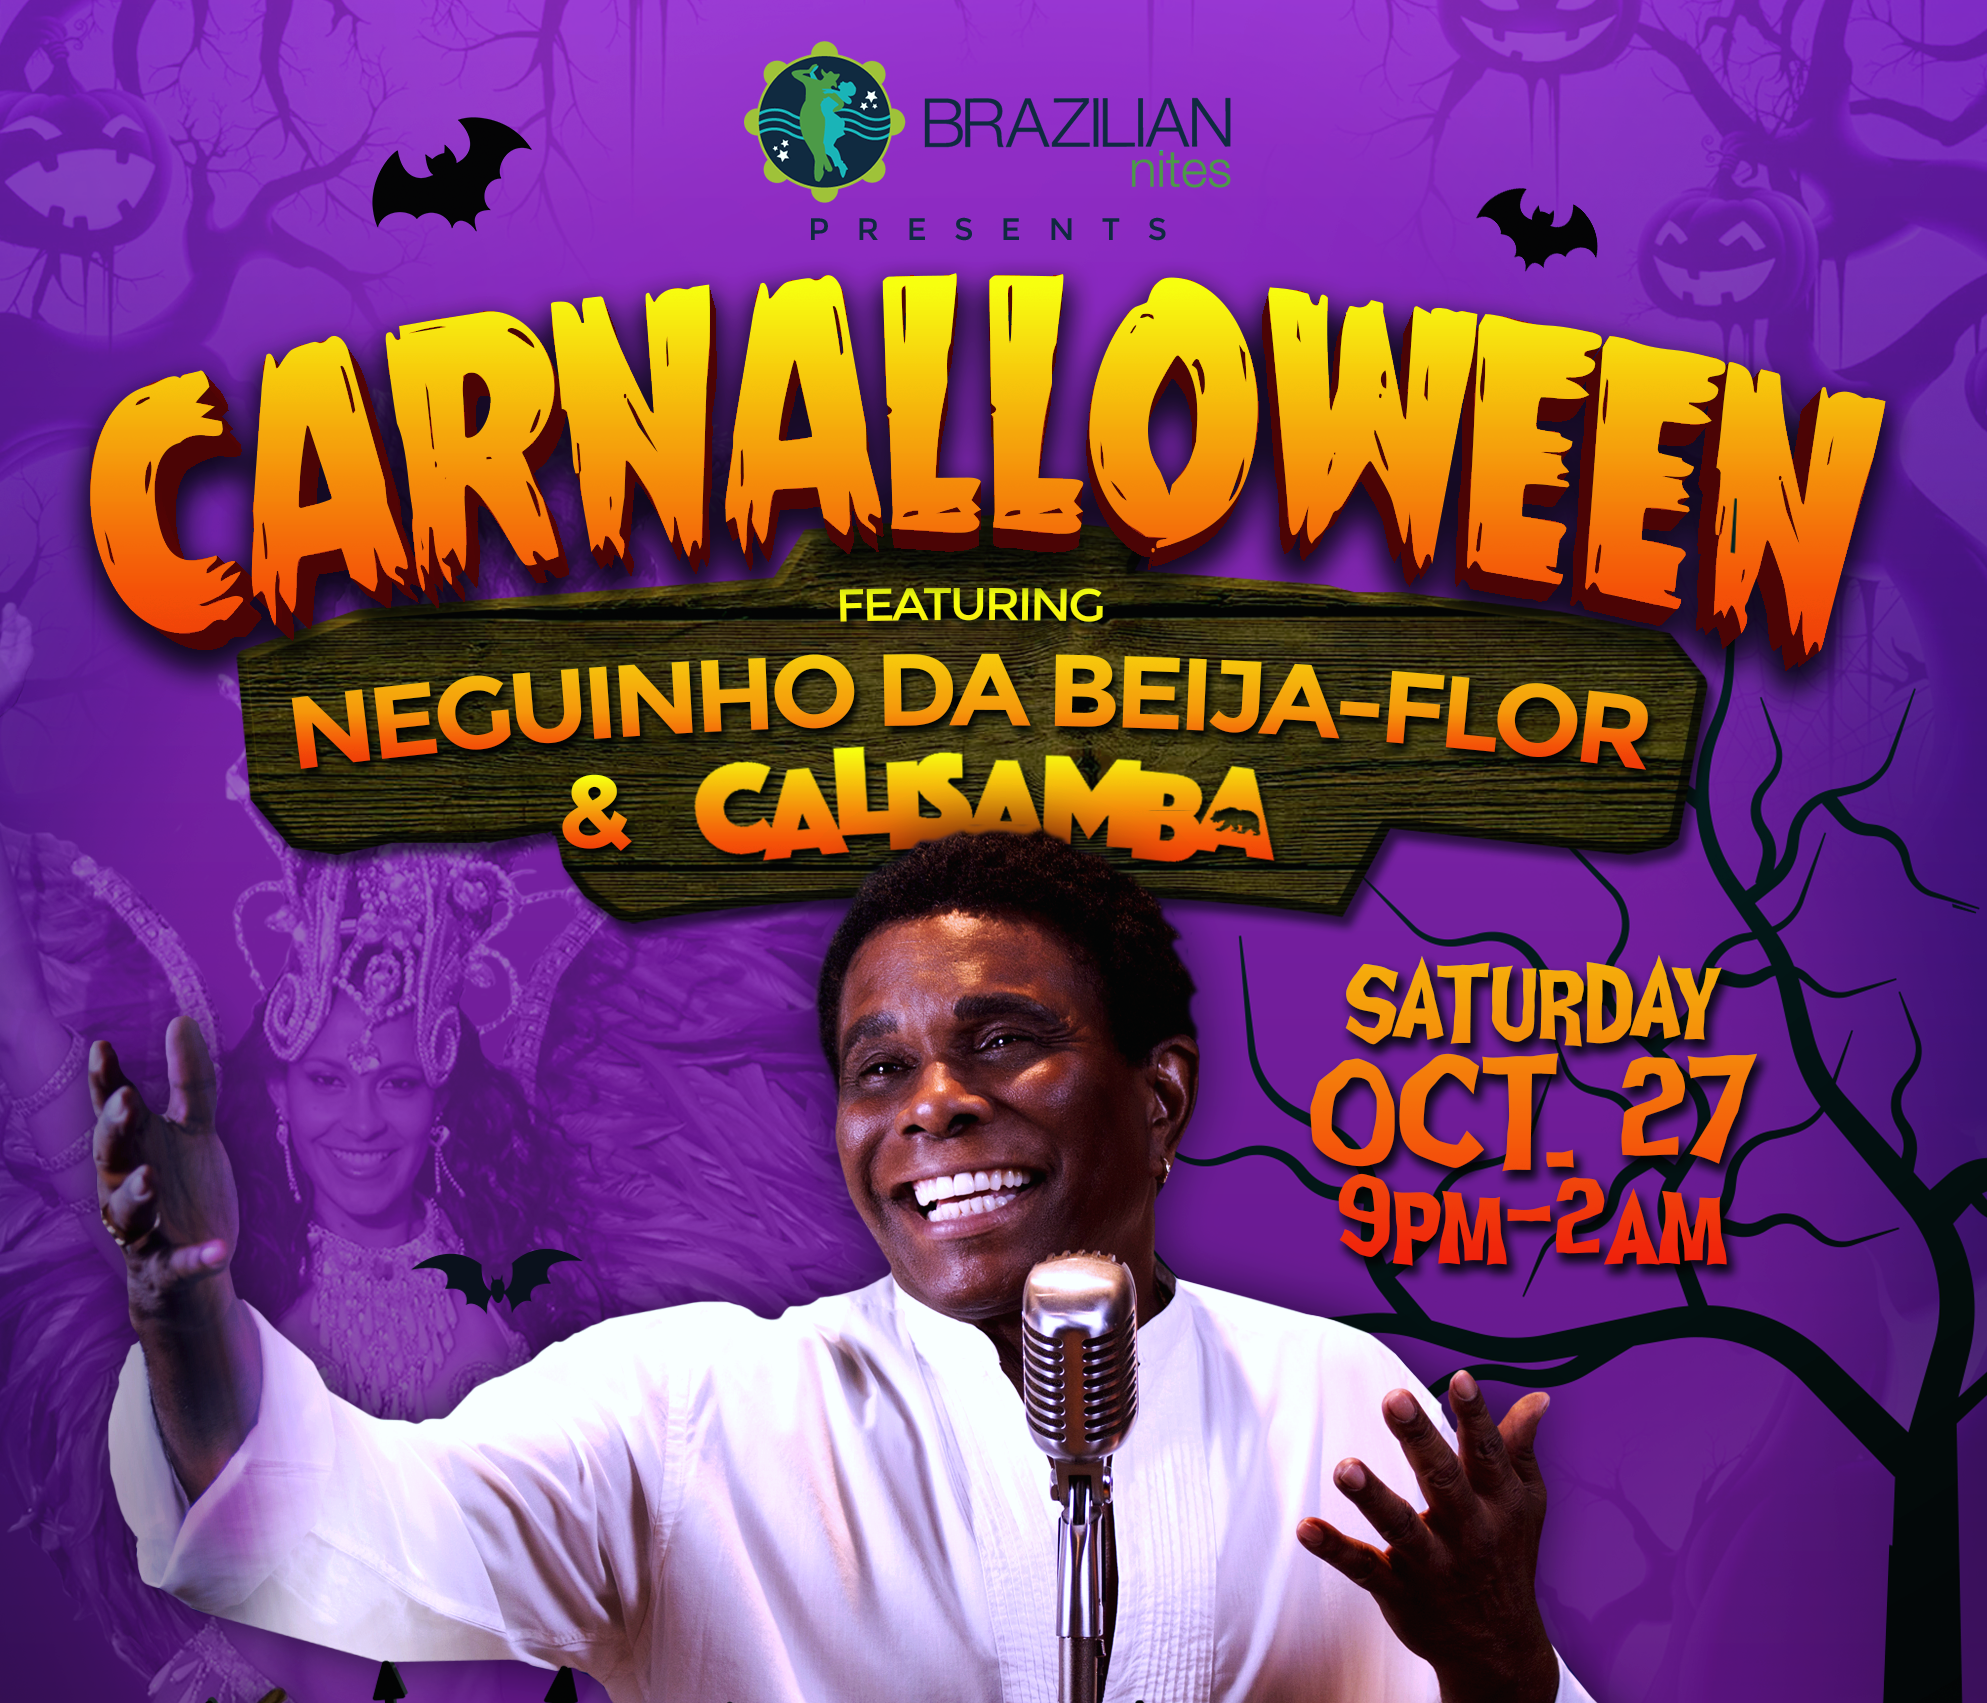 Rio's Carnaval spirit comes to Halloween